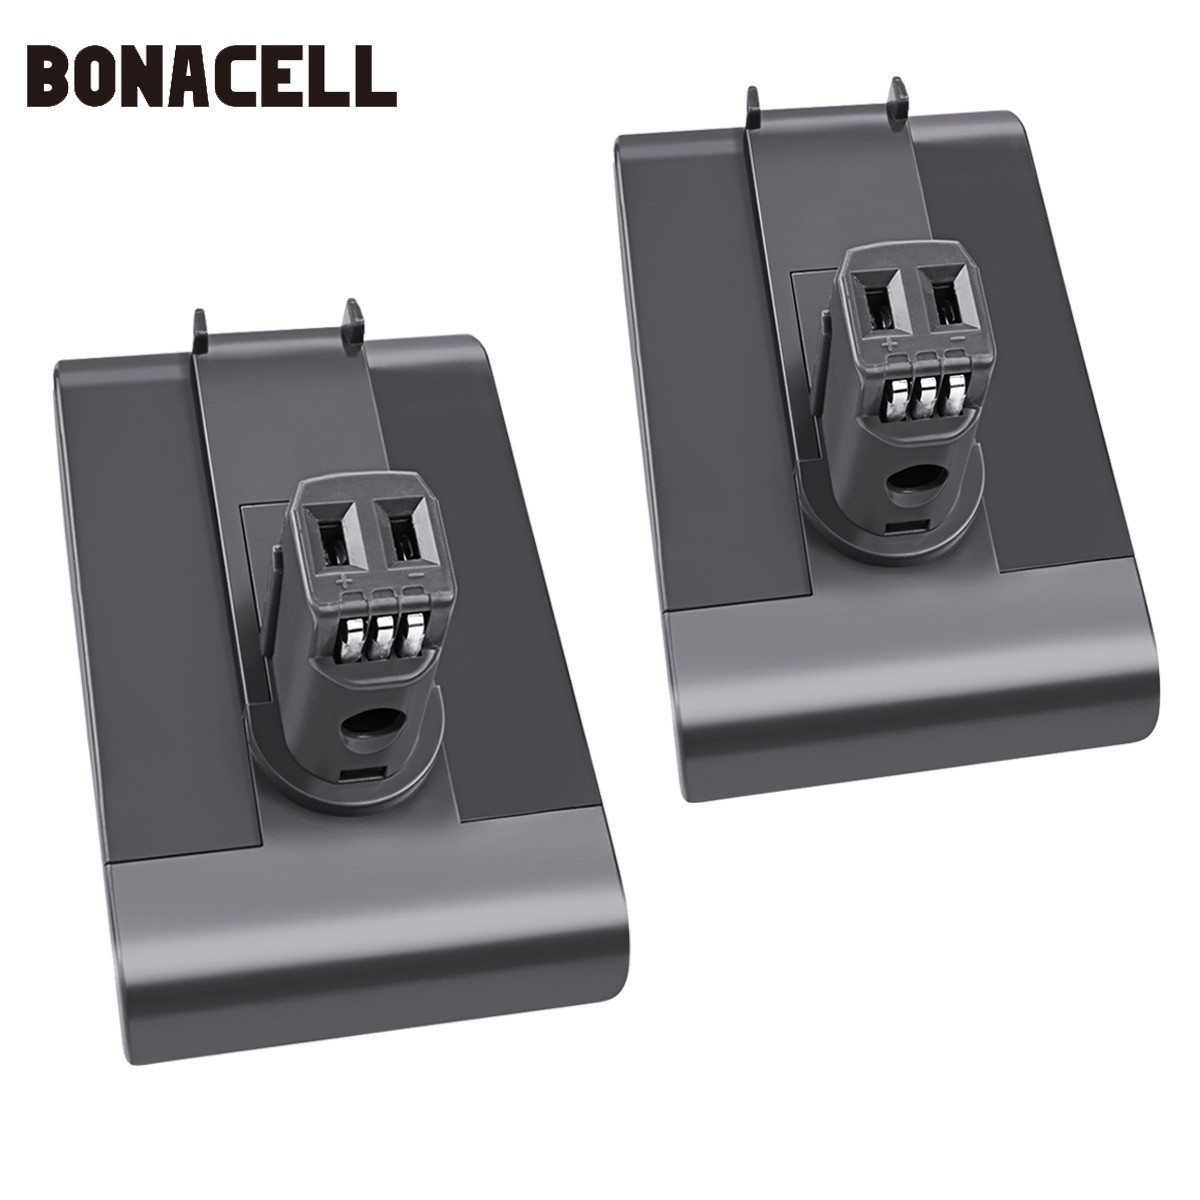 Bonacell 22.2V 2200mAh DC31 DC31A Battery for Dyson DC31 DC34 DC35 DC44 DC 45 Animal Handheld Vacuum Cleaner L30Bonacell 22.2V 2200mAh DC31 DC31A Battery for Dyson DC31 DC34 DC35 DC44 DC 45 Animal Handheld Vacuum Cleaner L30